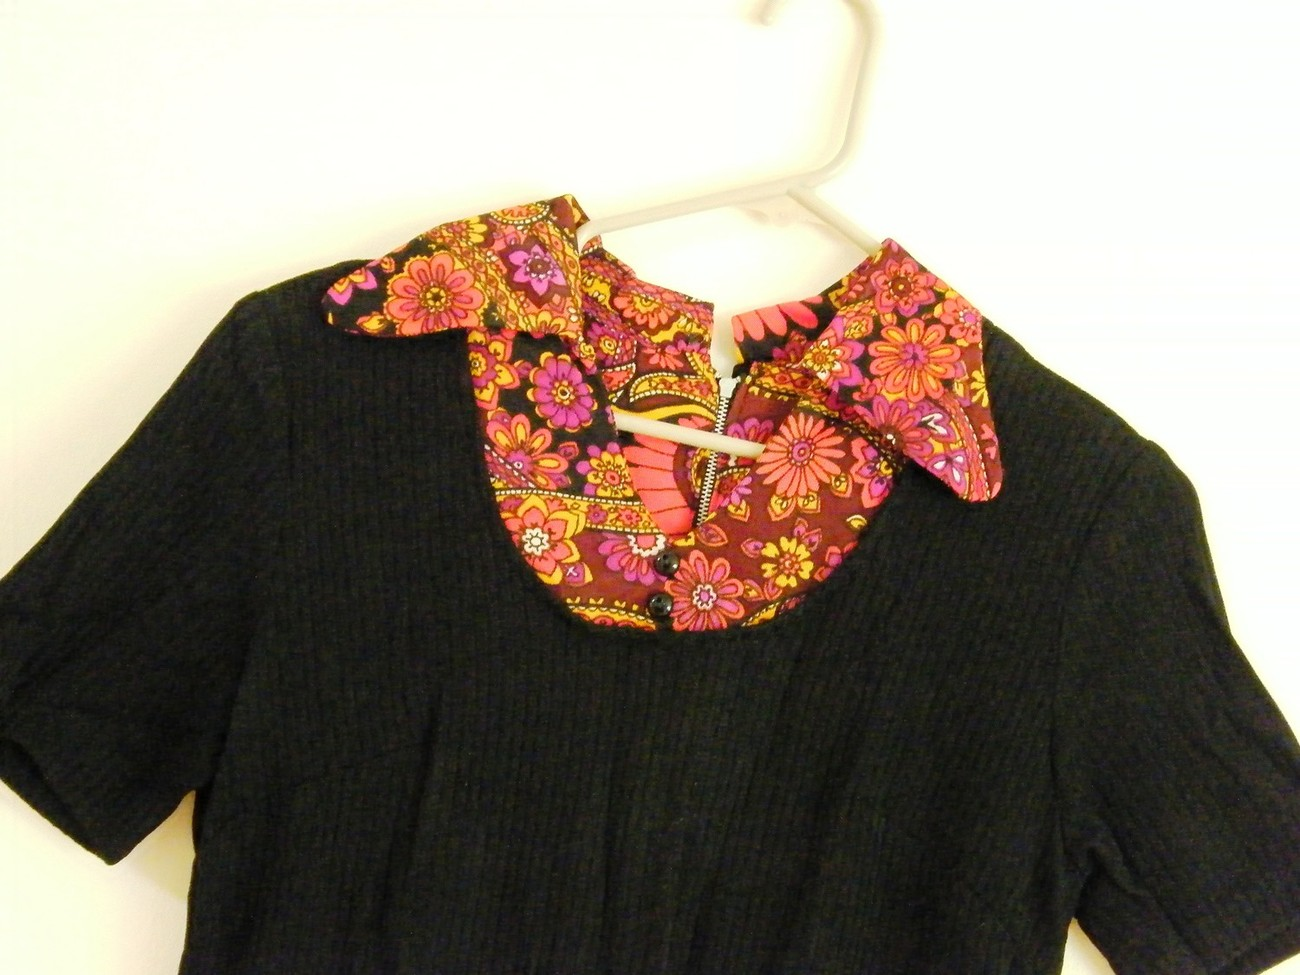 Groovy Dress Jumper - Vintage